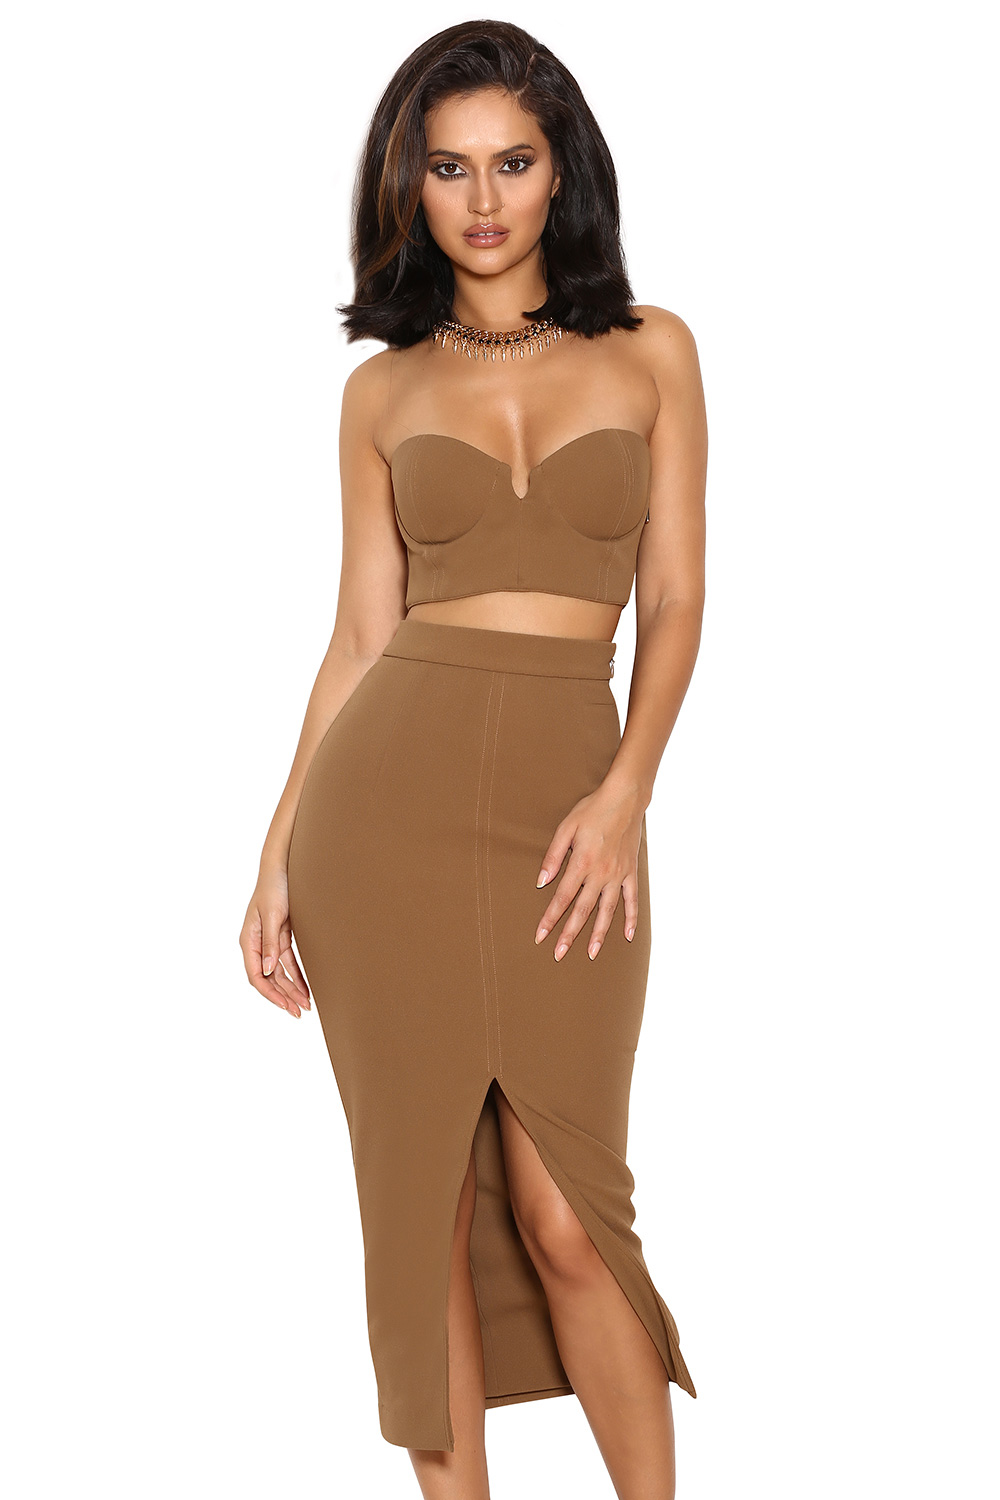 39 clothing 2 pieces 39 caspiana 39 camel crepe bustier two piece. Black Bedroom Furniture Sets. Home Design Ideas